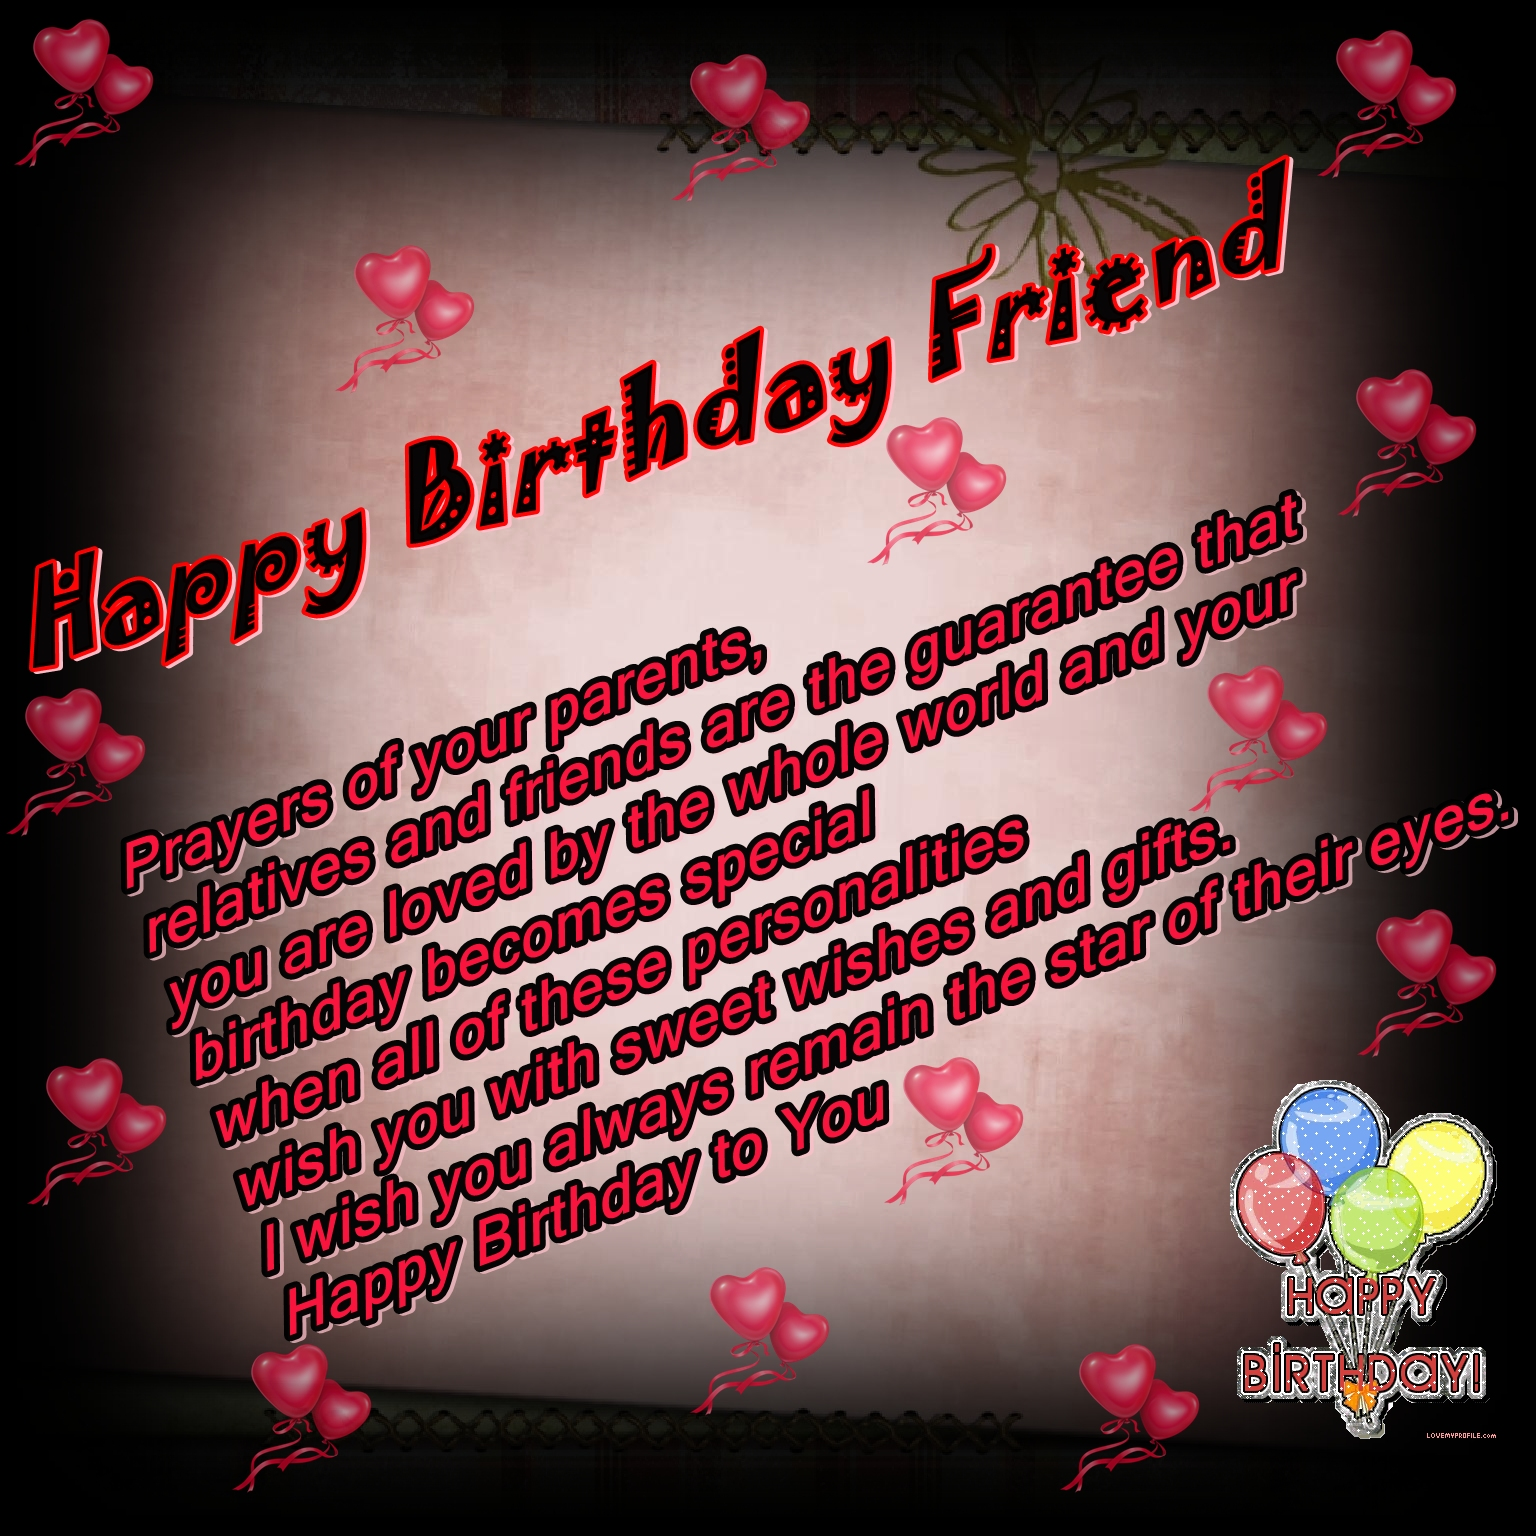 Birthday Quotes For My Female Friend: 40th Birthday Quotes For Friends. QuotesGram